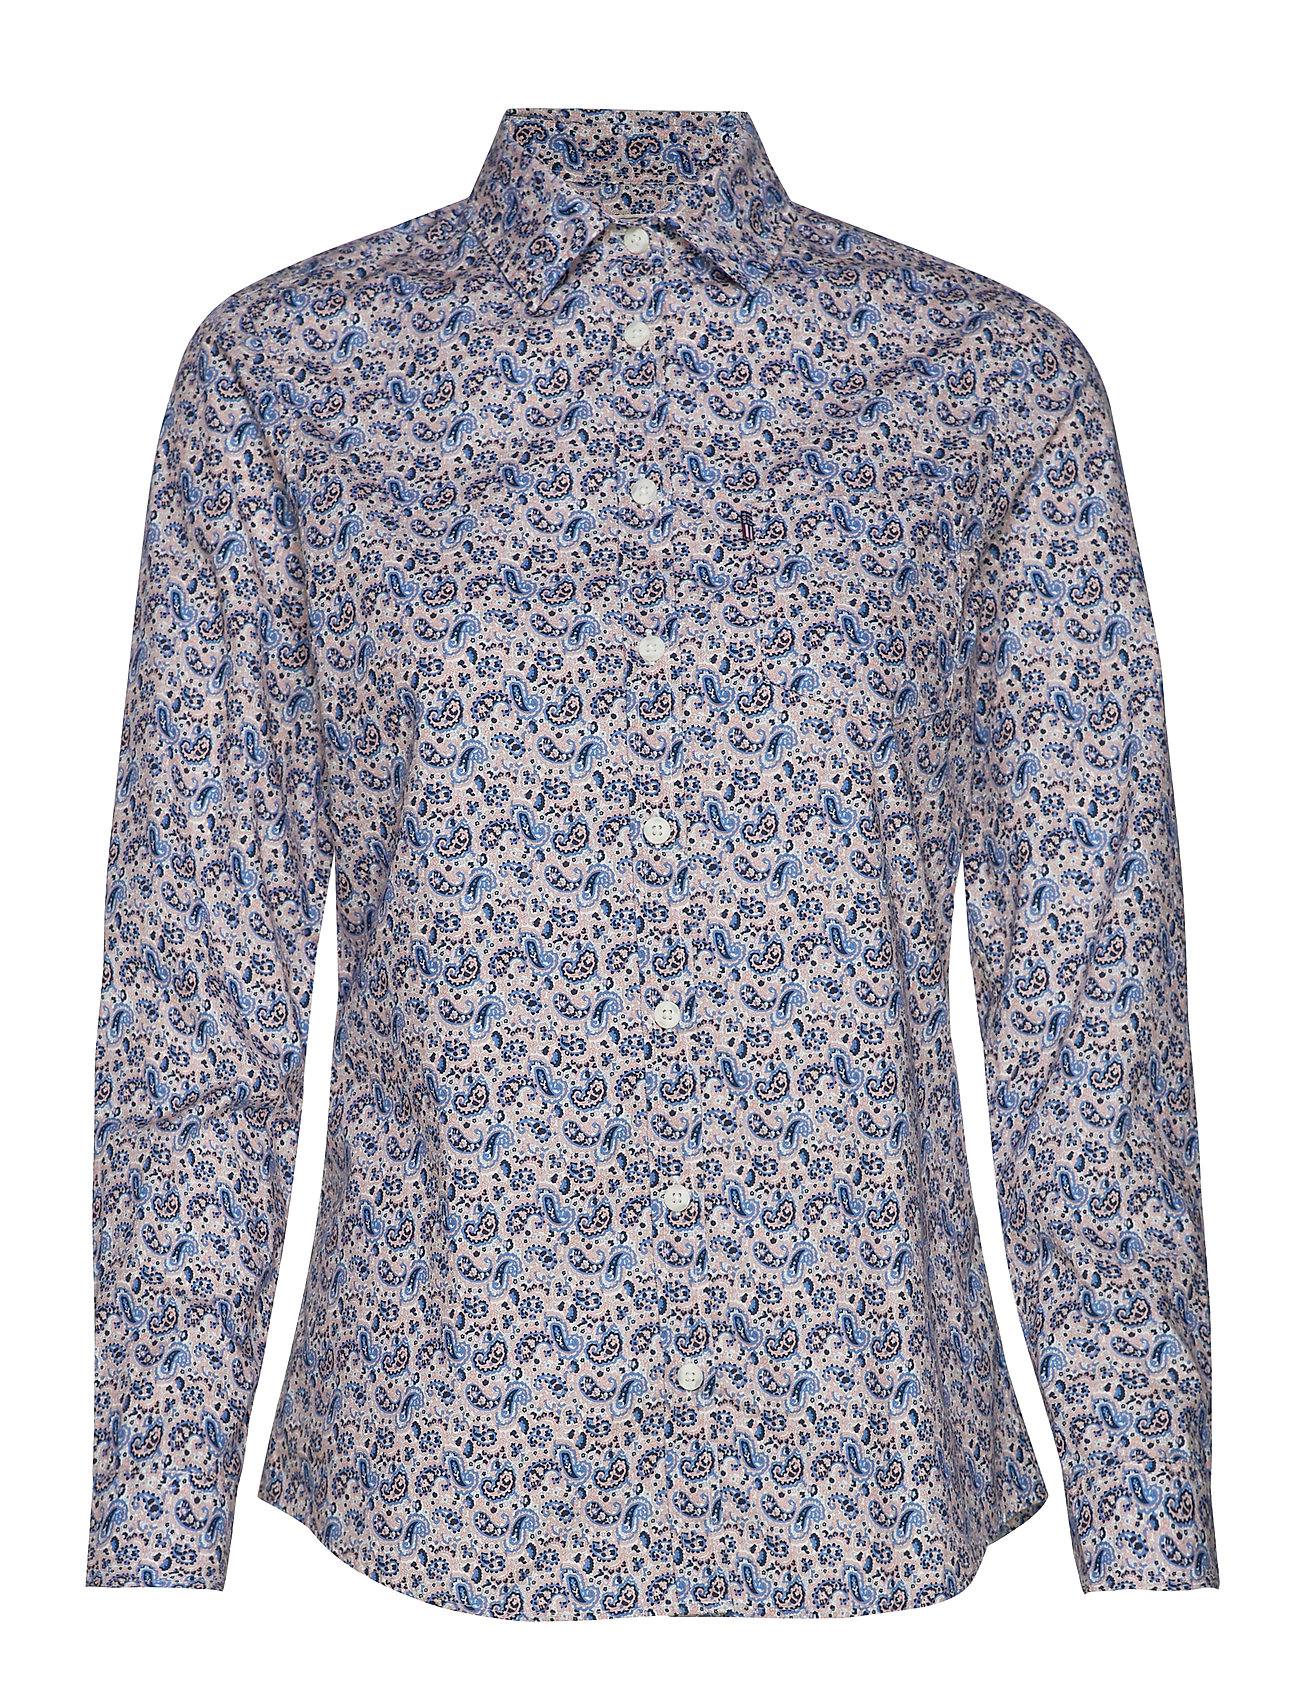 Lexington Clothing Emily Poplin Shirt - PAISLEY PRINT